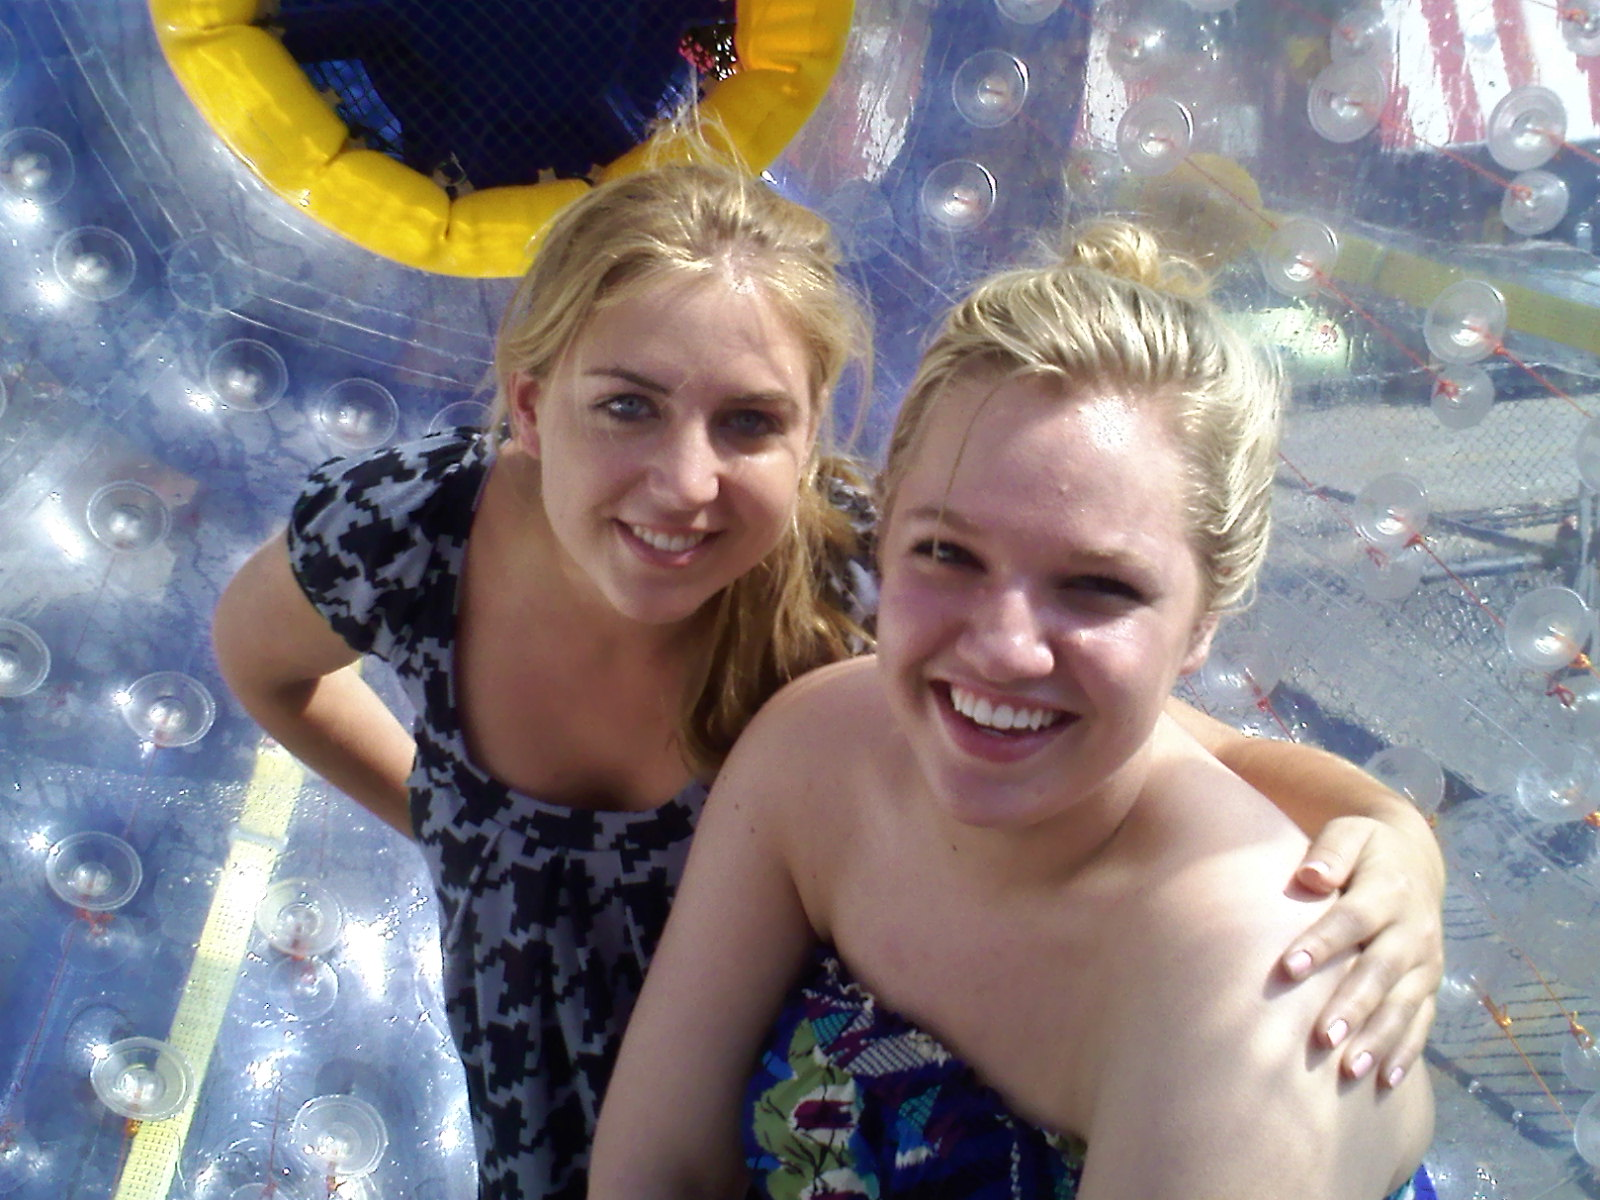 Two Blondes in the Fishpipe